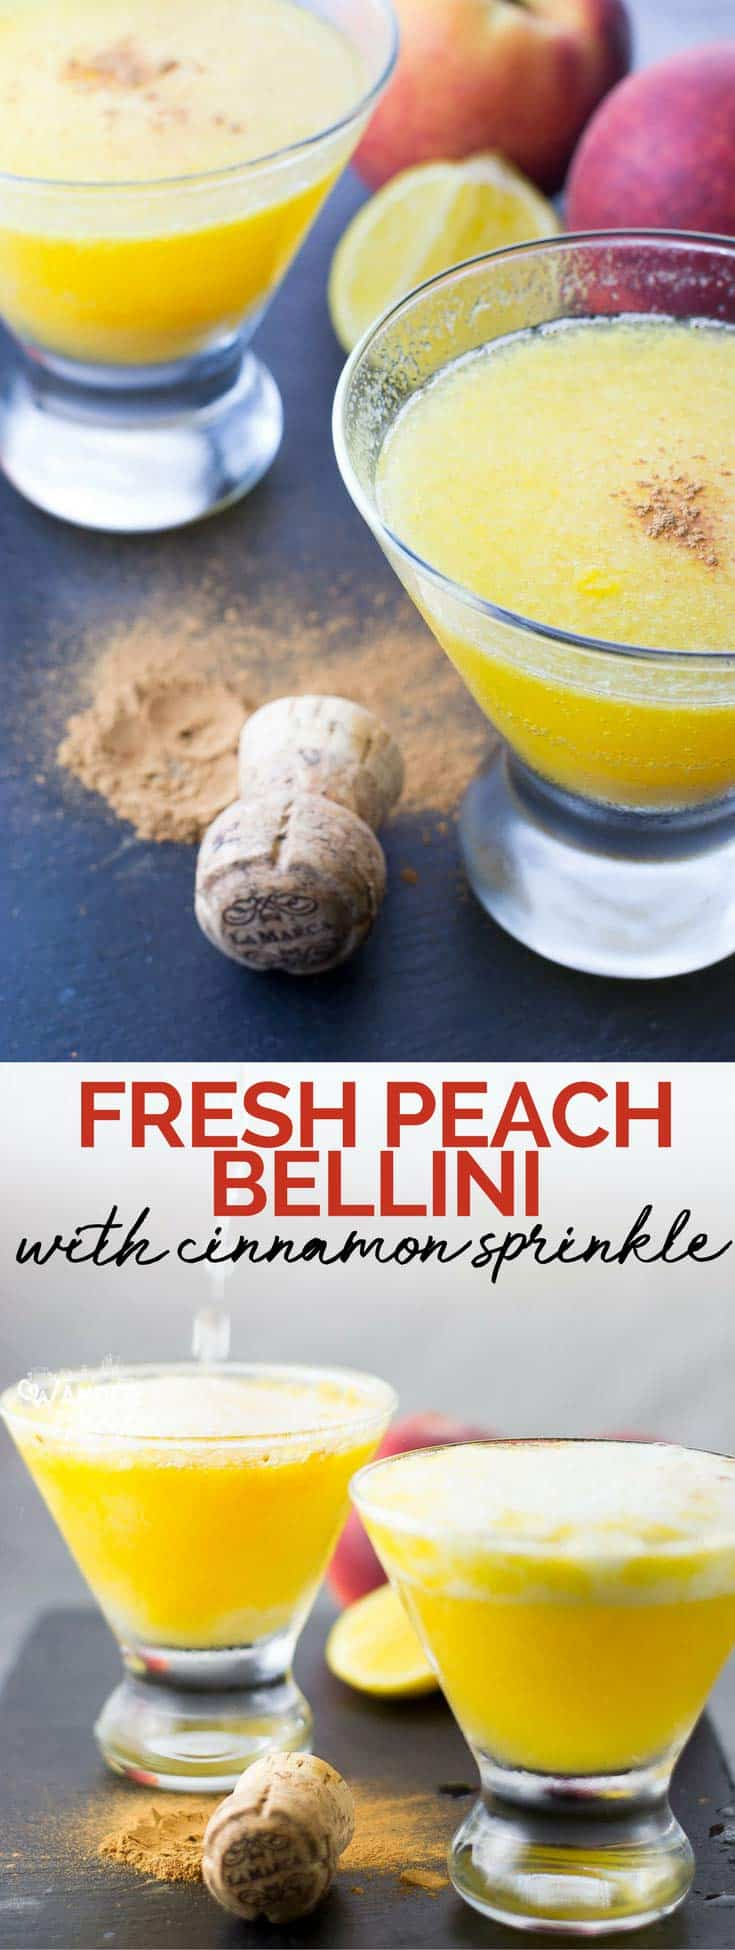 Easy Fresh Peach Bellini Recipe - Prosecco and Peaches Cocktail